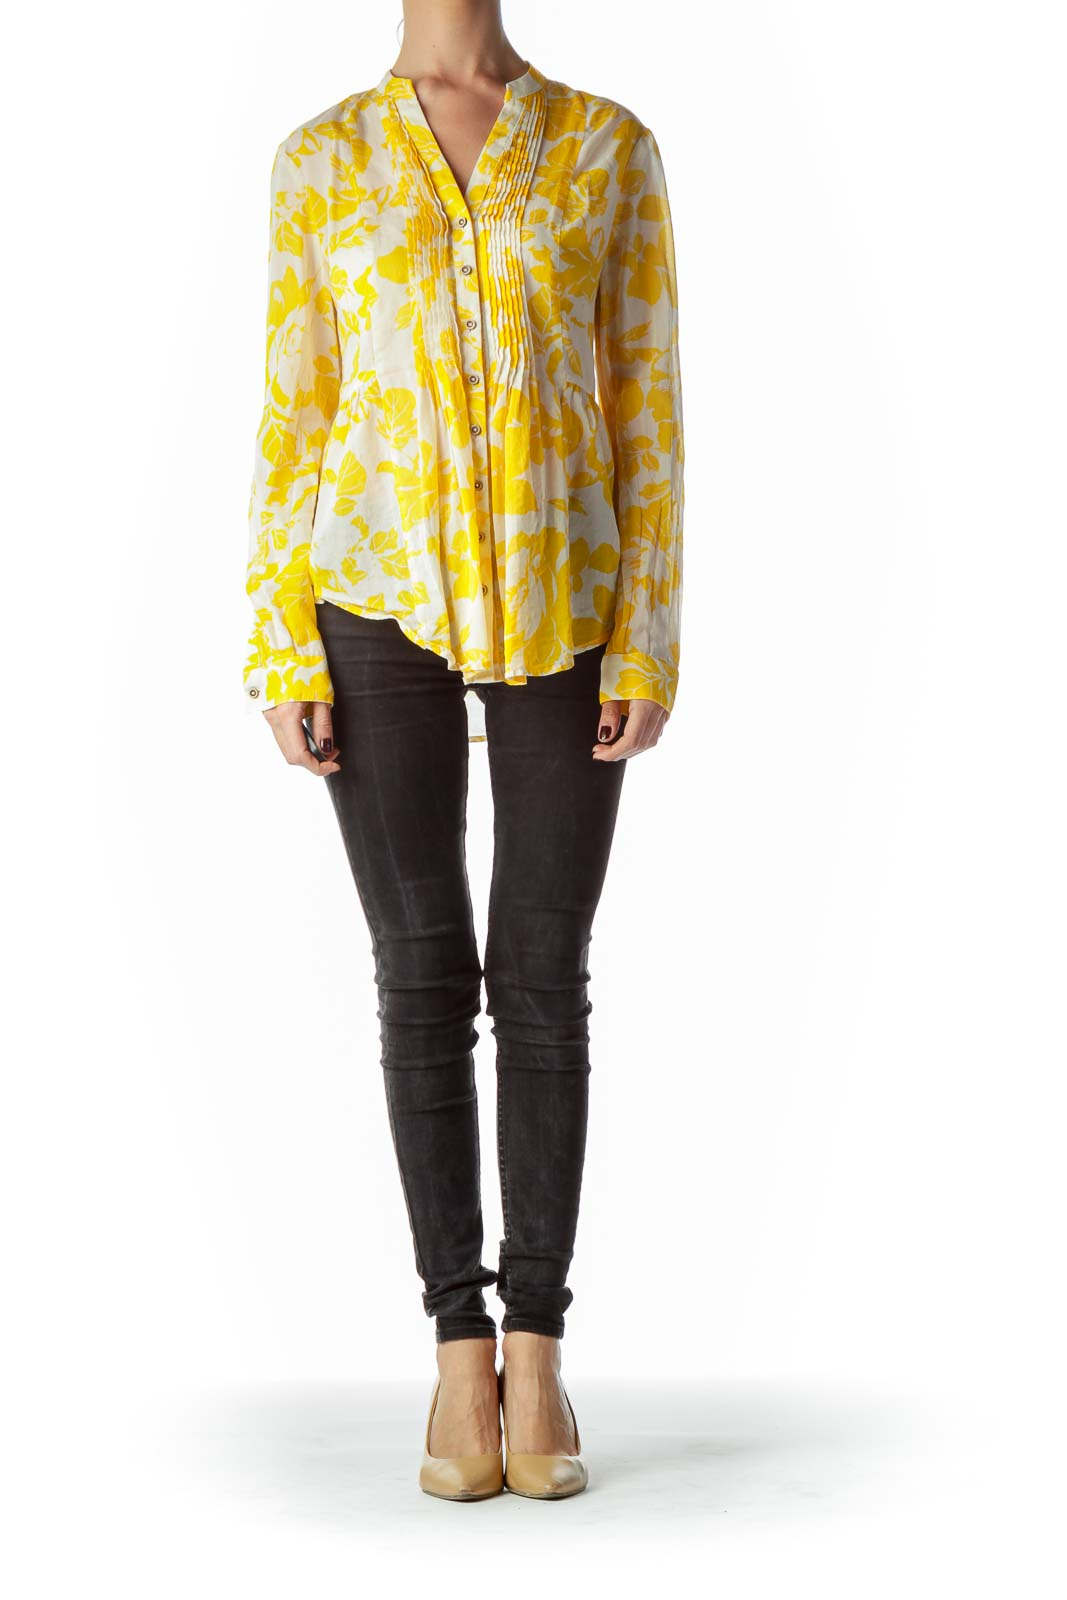 Yellow Floral Print 100% Cotton See-Through Blouse